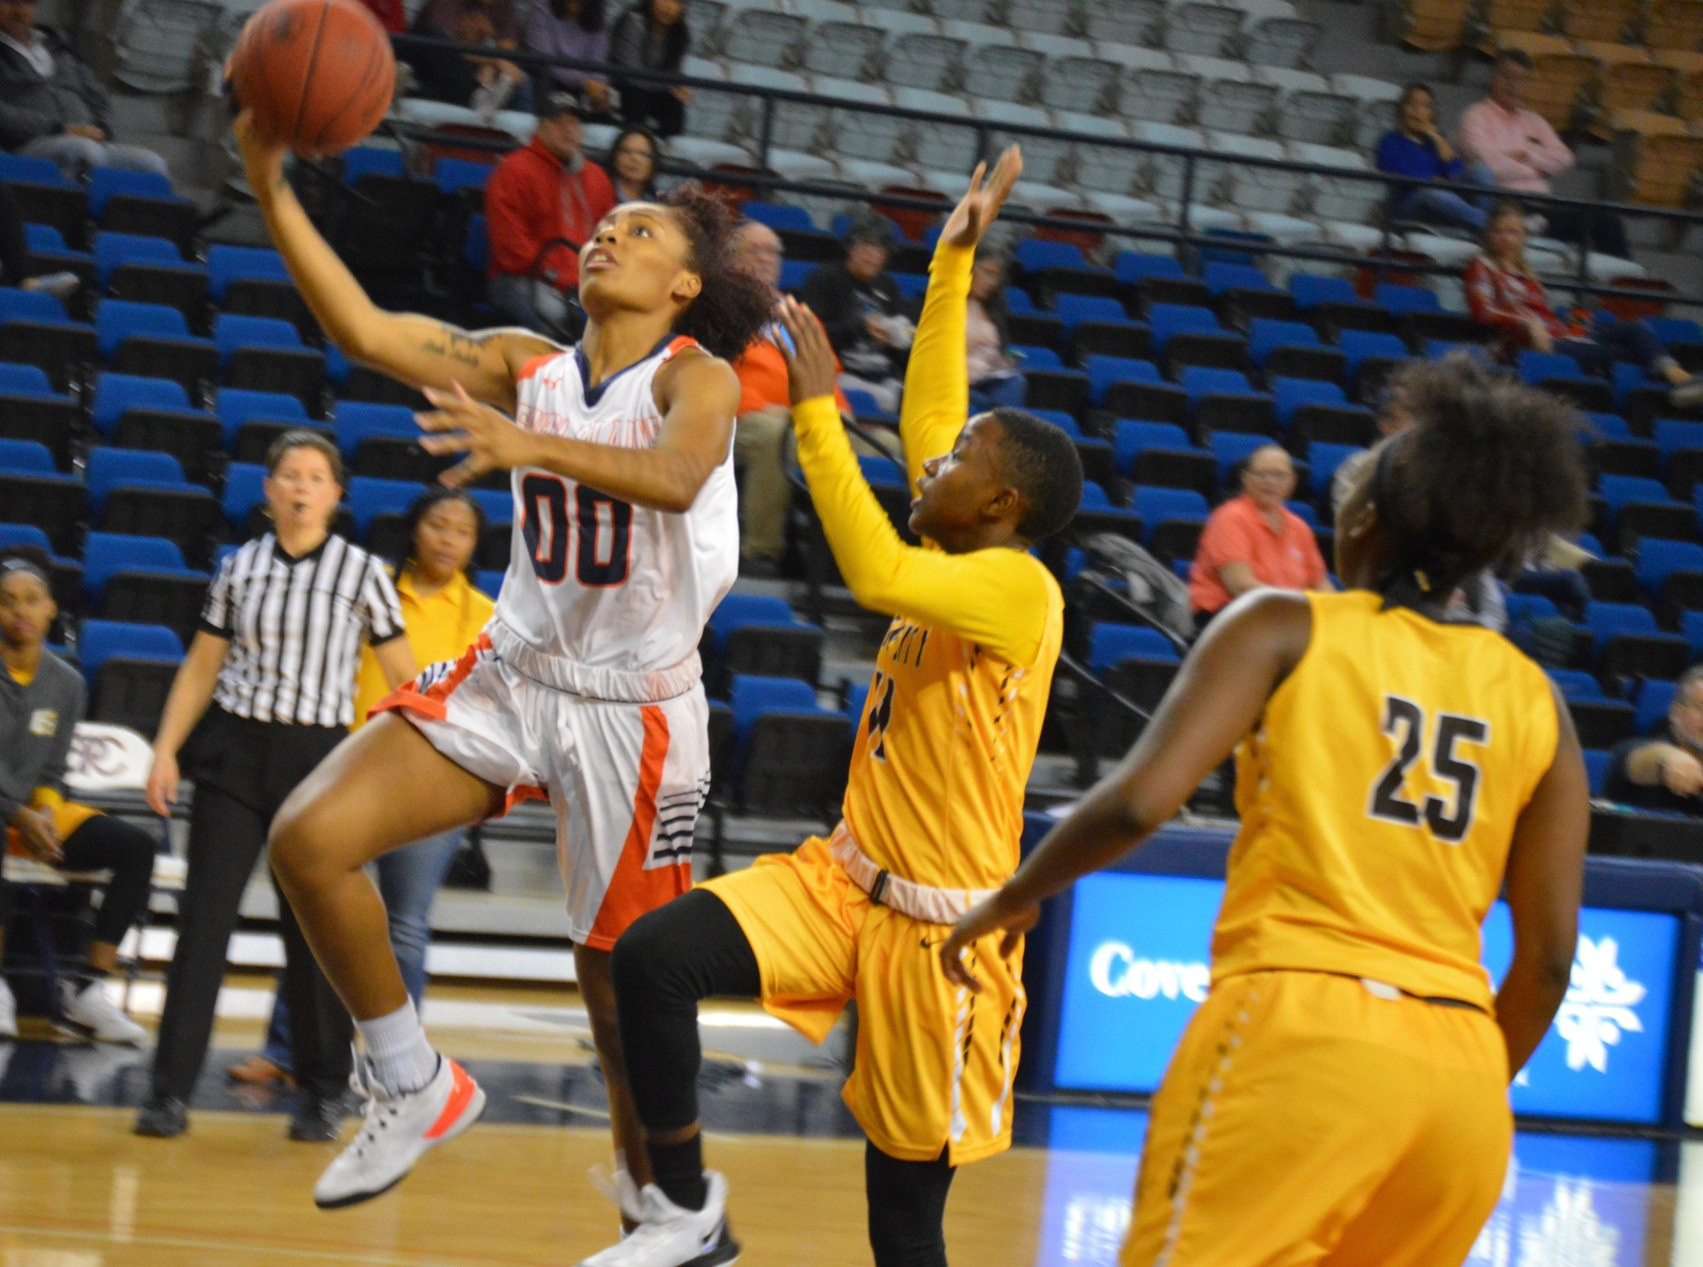 Kuehne scores 17, No.16 Lady Texans trounce Garden City 60-35 in home opener on Tuesday